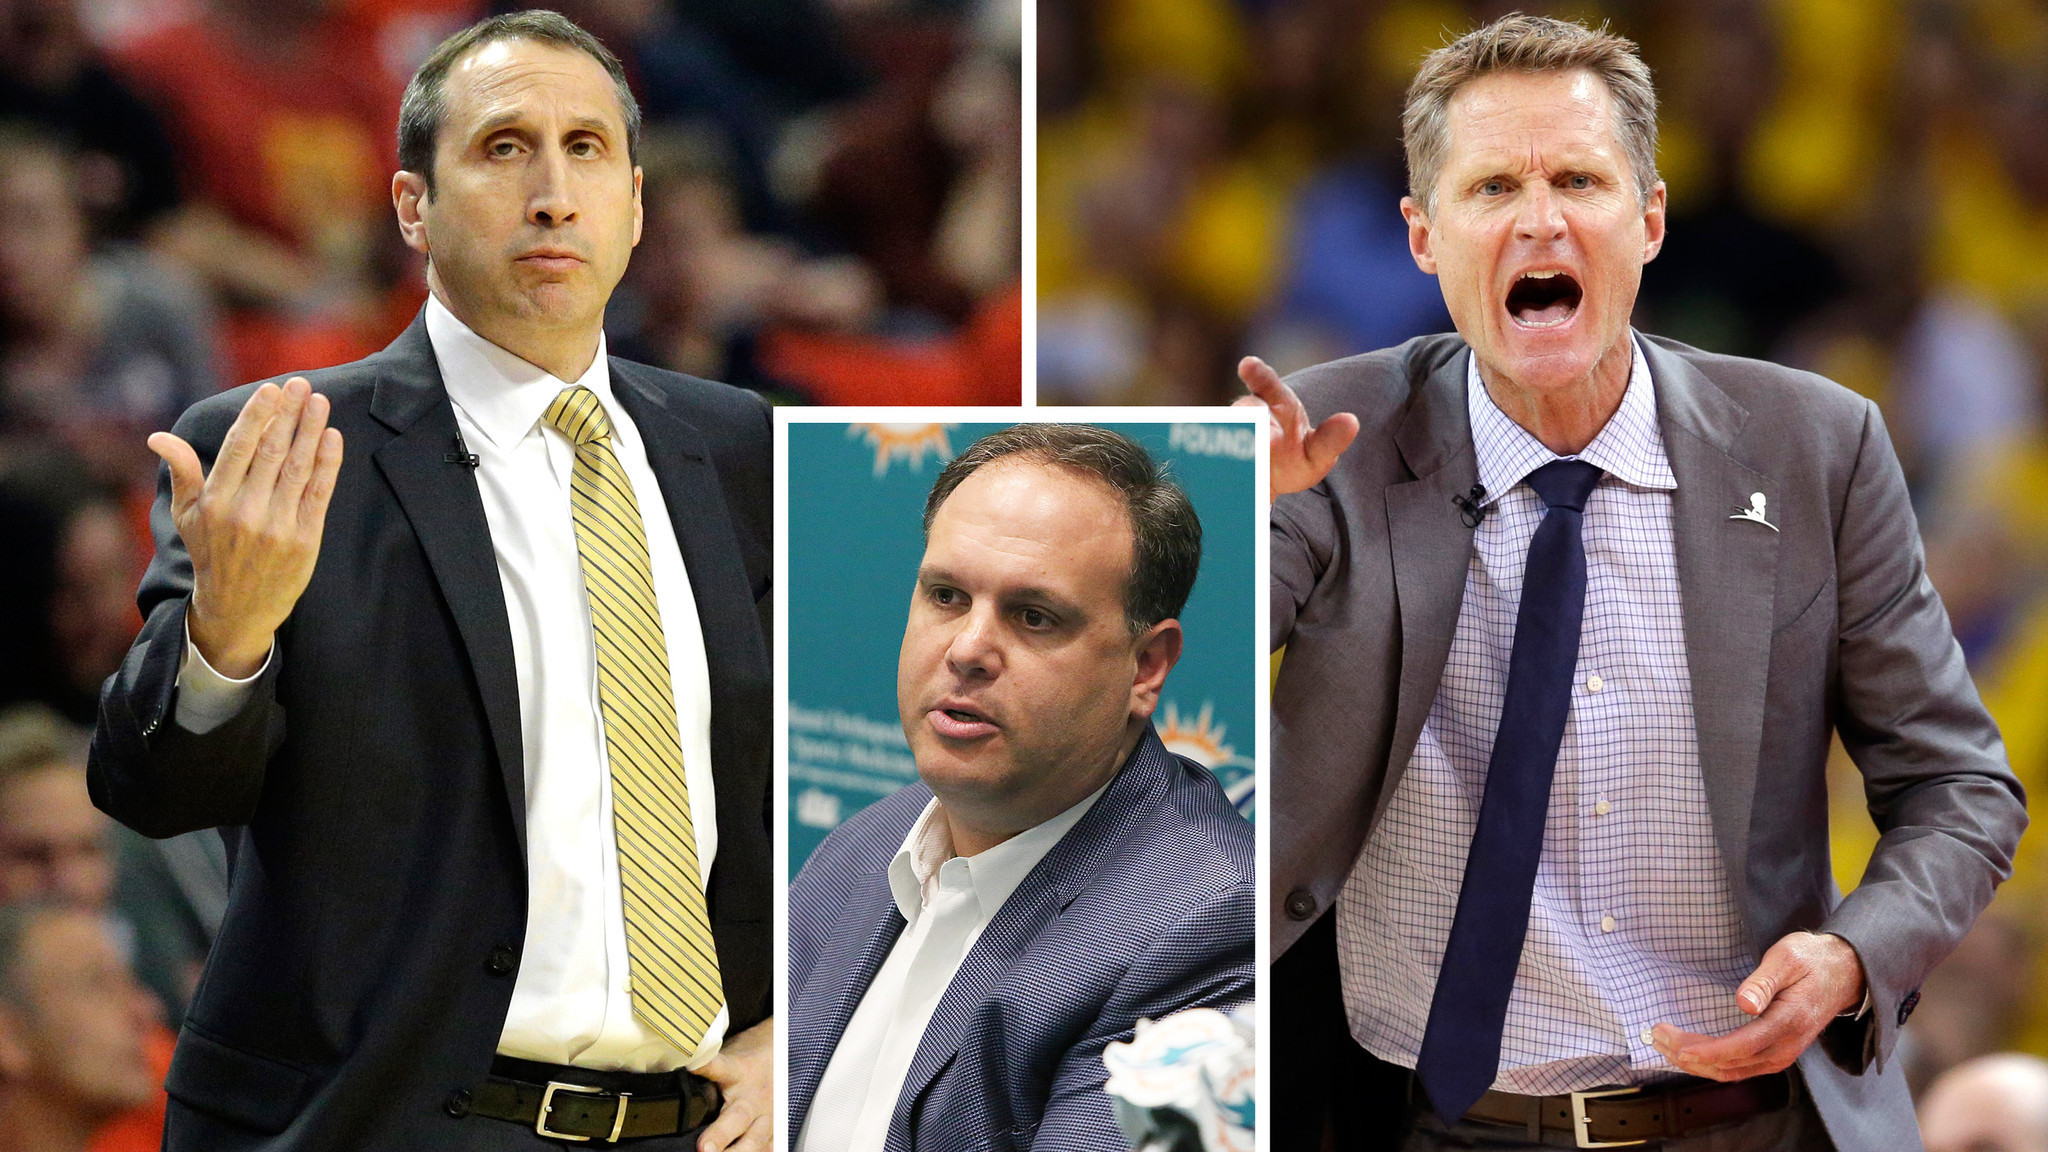 nba finals coaches steve kerr, david blatt were represented by, Esstisch ideennn